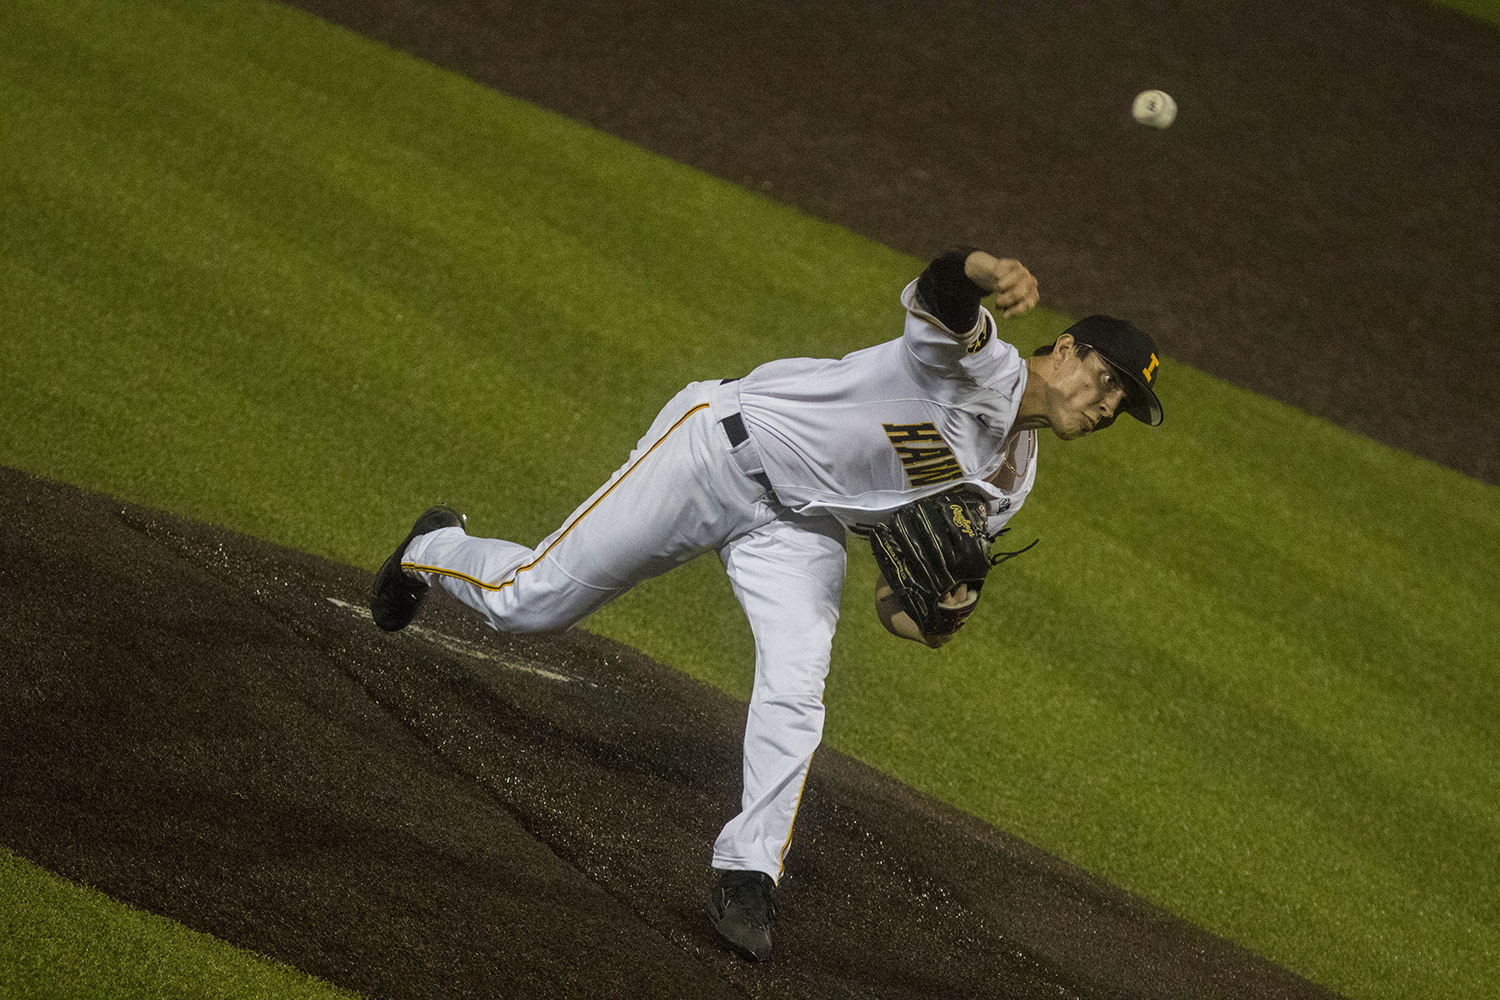 Iowa's Ben Probst pitches during the Iowa/Southeastern Community College baseball game at Duane Banks Field on Thursday, Sept. 20, 2018. The Hawkeyes defeated the Blackhawks, 23-5.